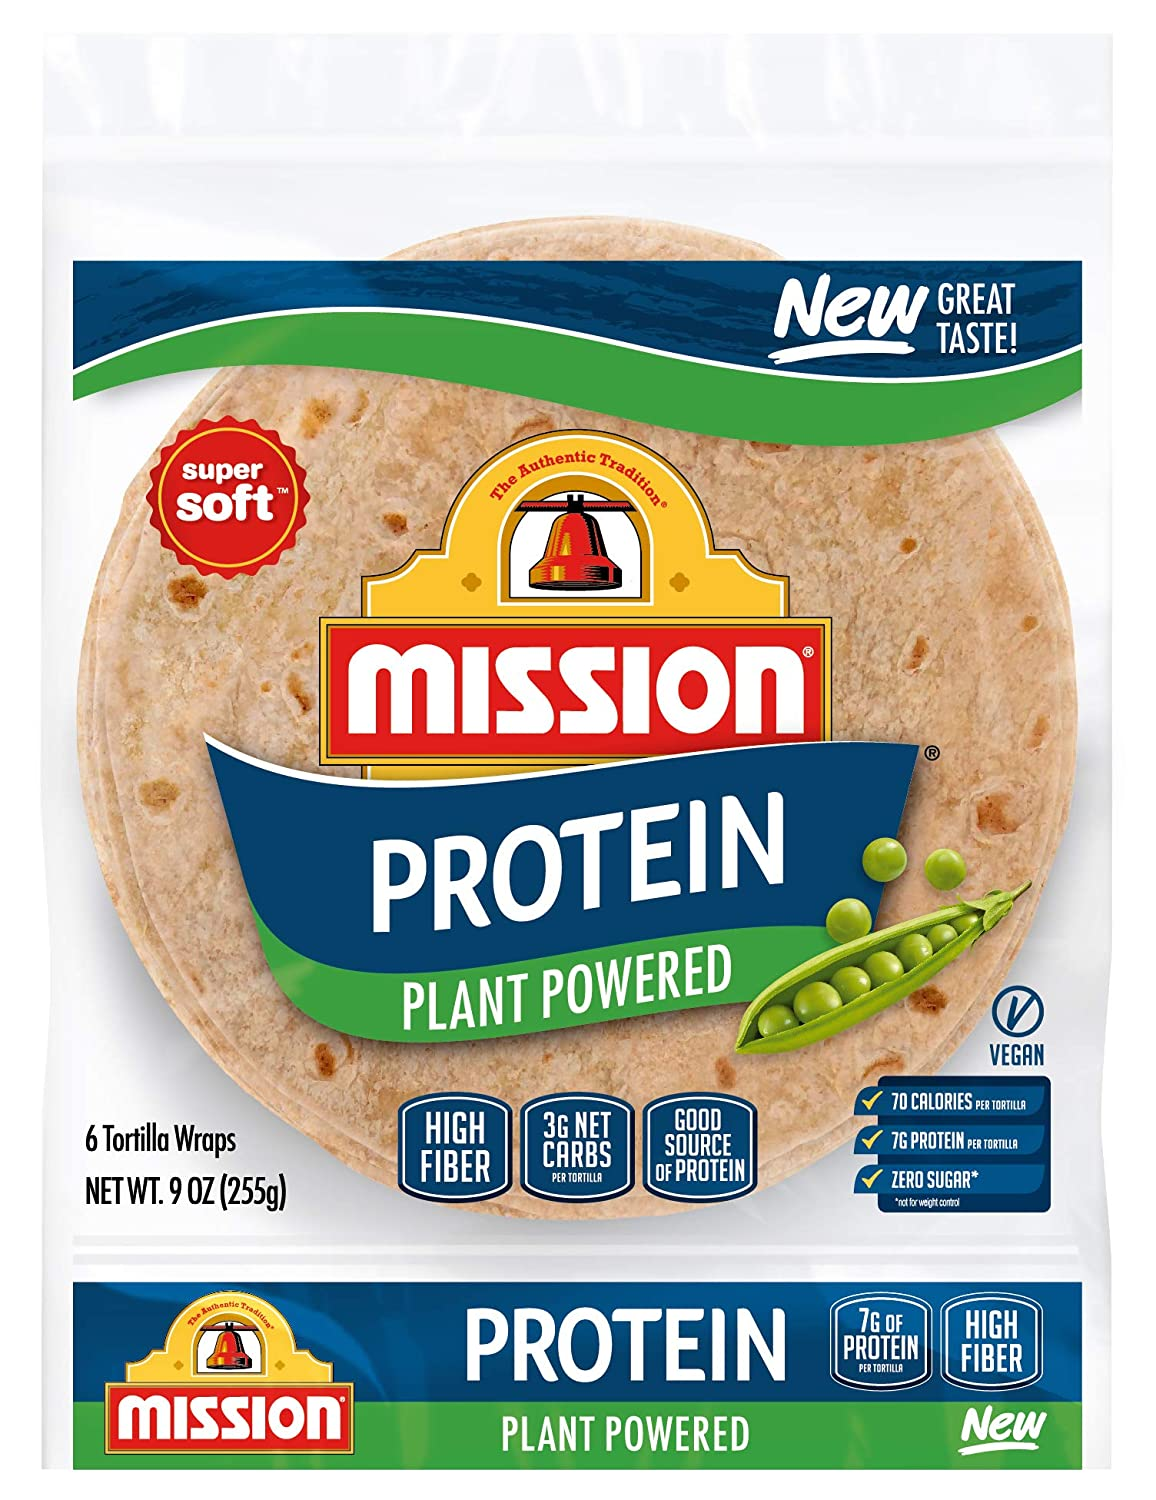 Mission, Vegan Protein Tortilla Wraps, 6 ct